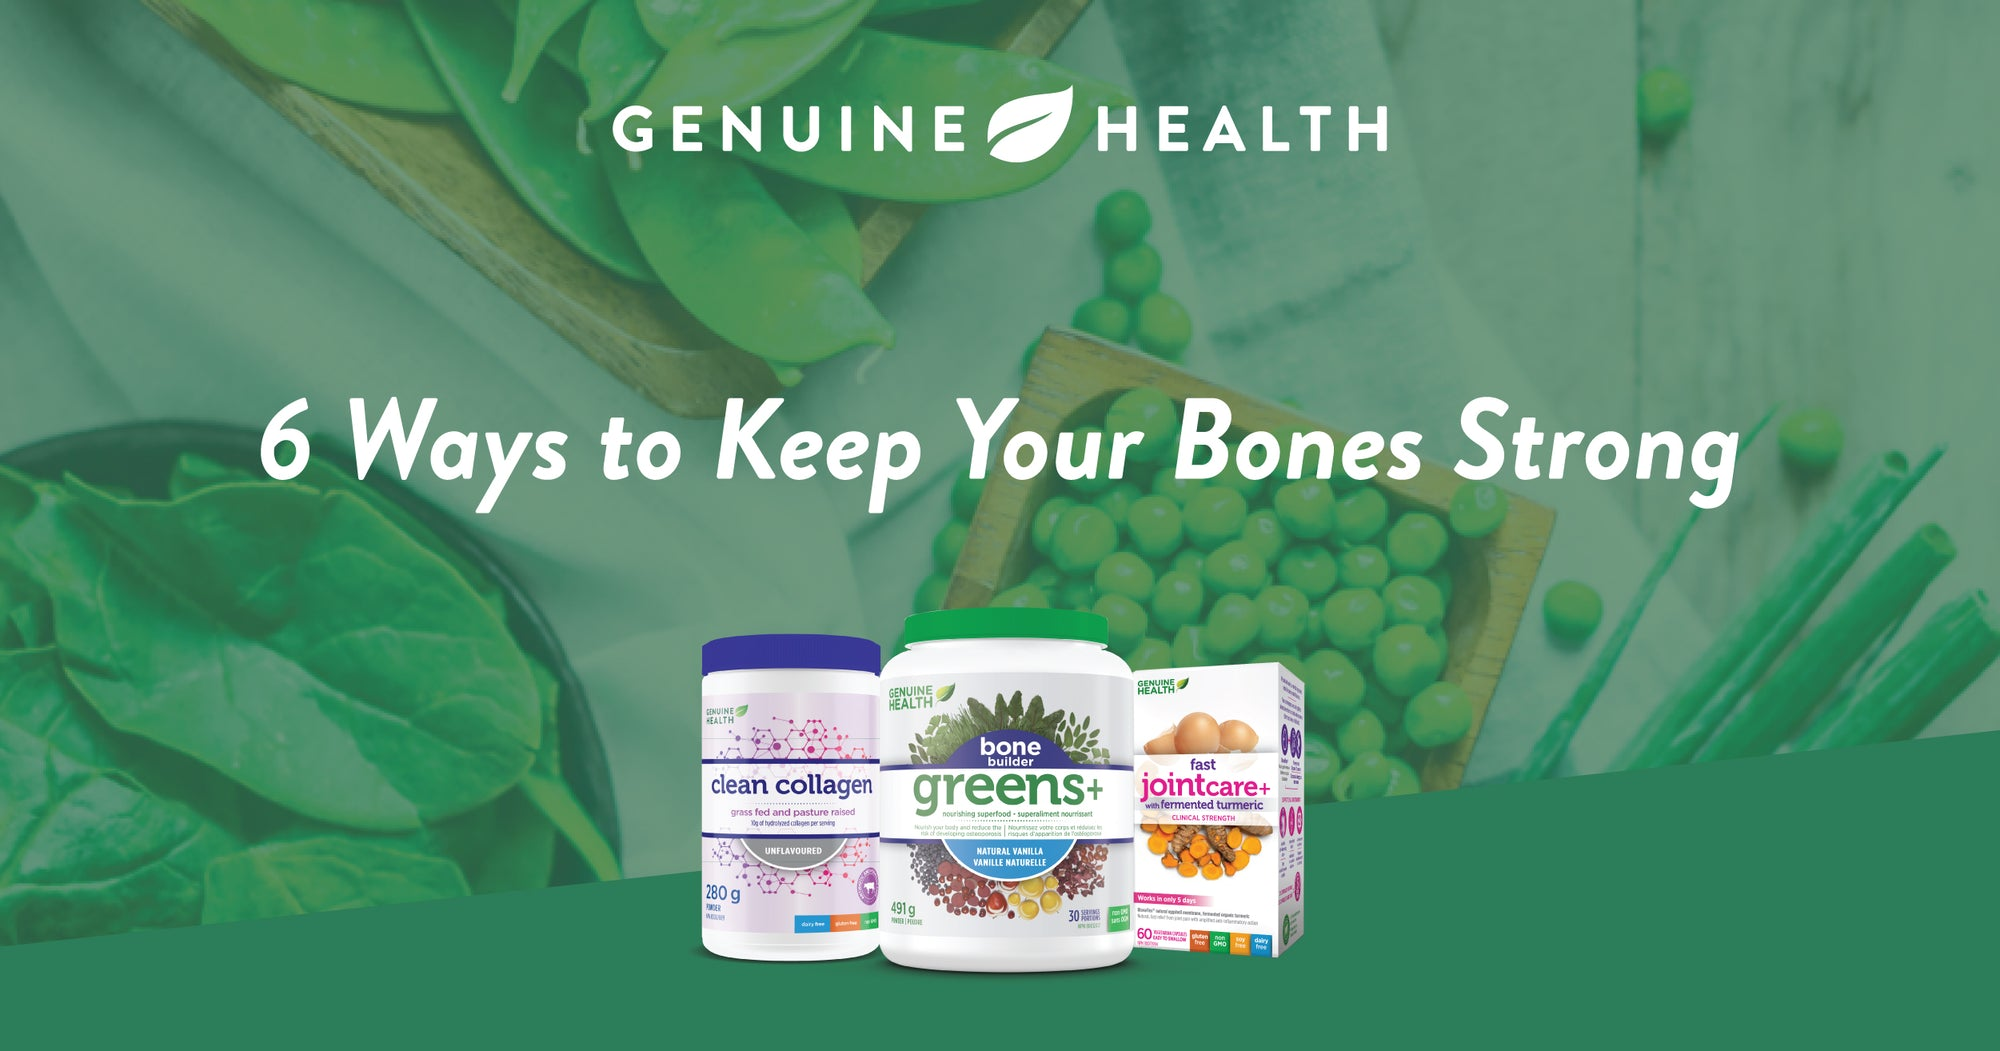 6 Ways to Keep Your Bones Strong